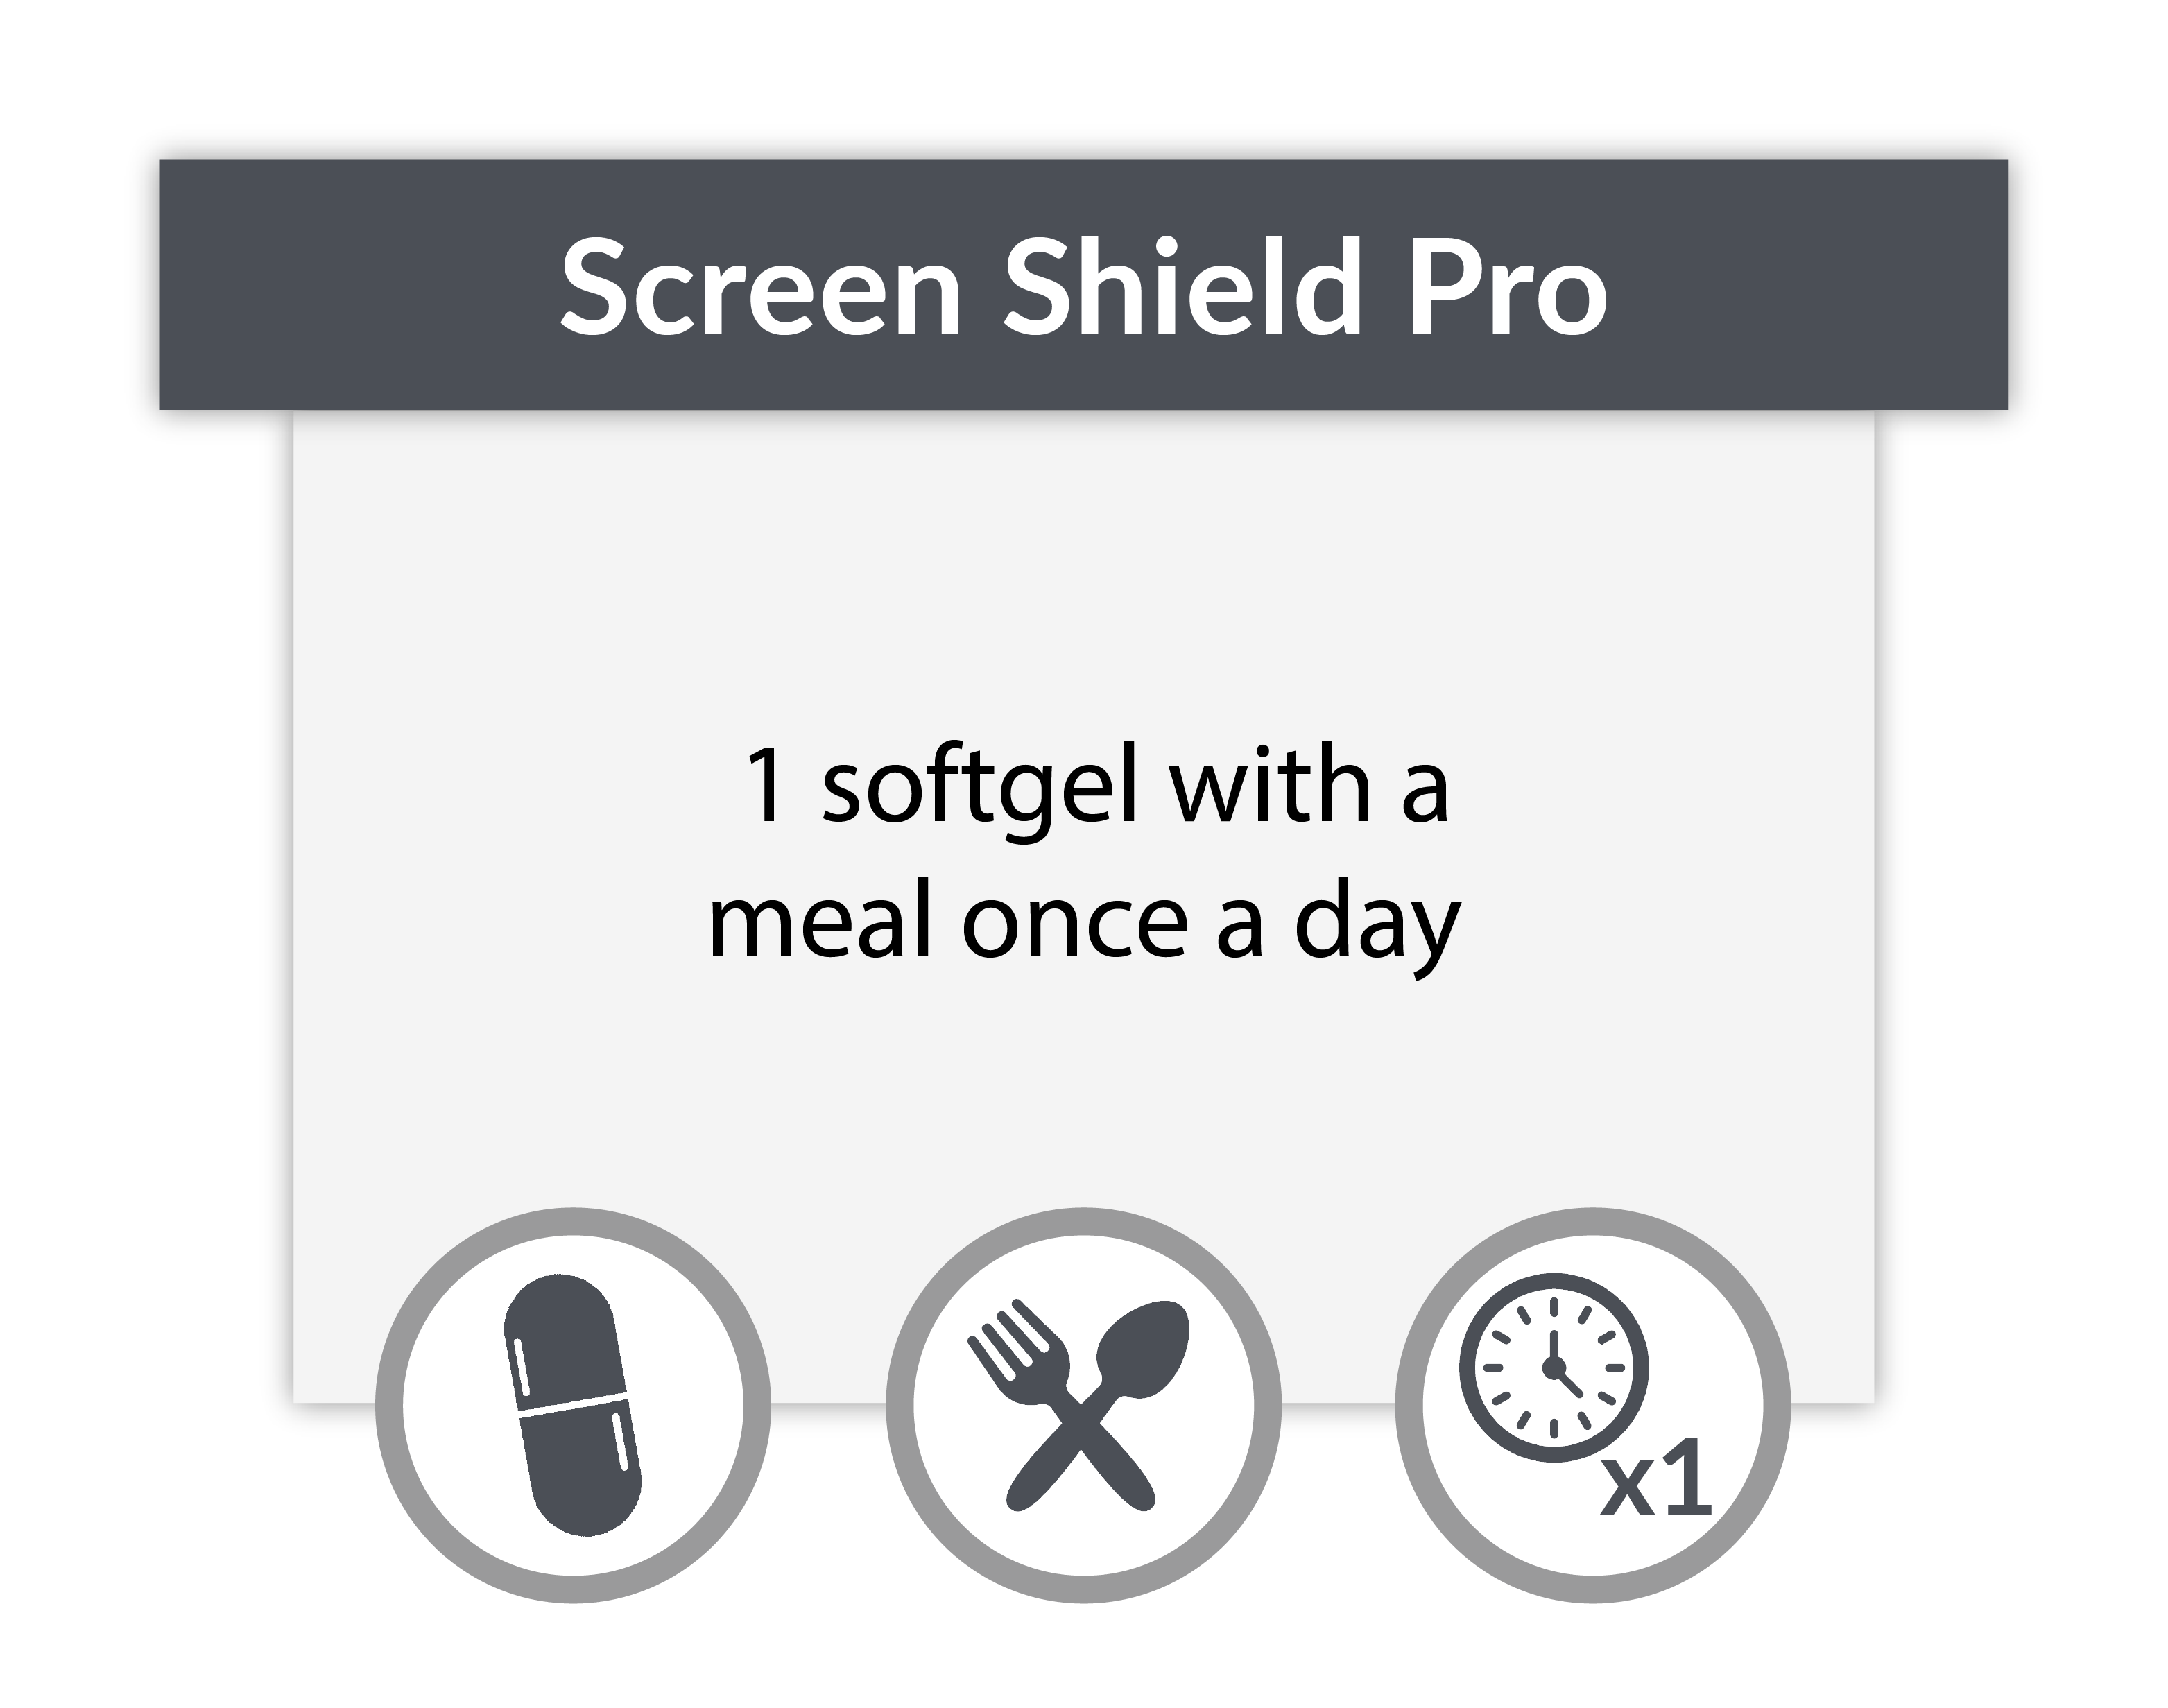 Take one Screen Shield Pro softgel with a meal once a day.